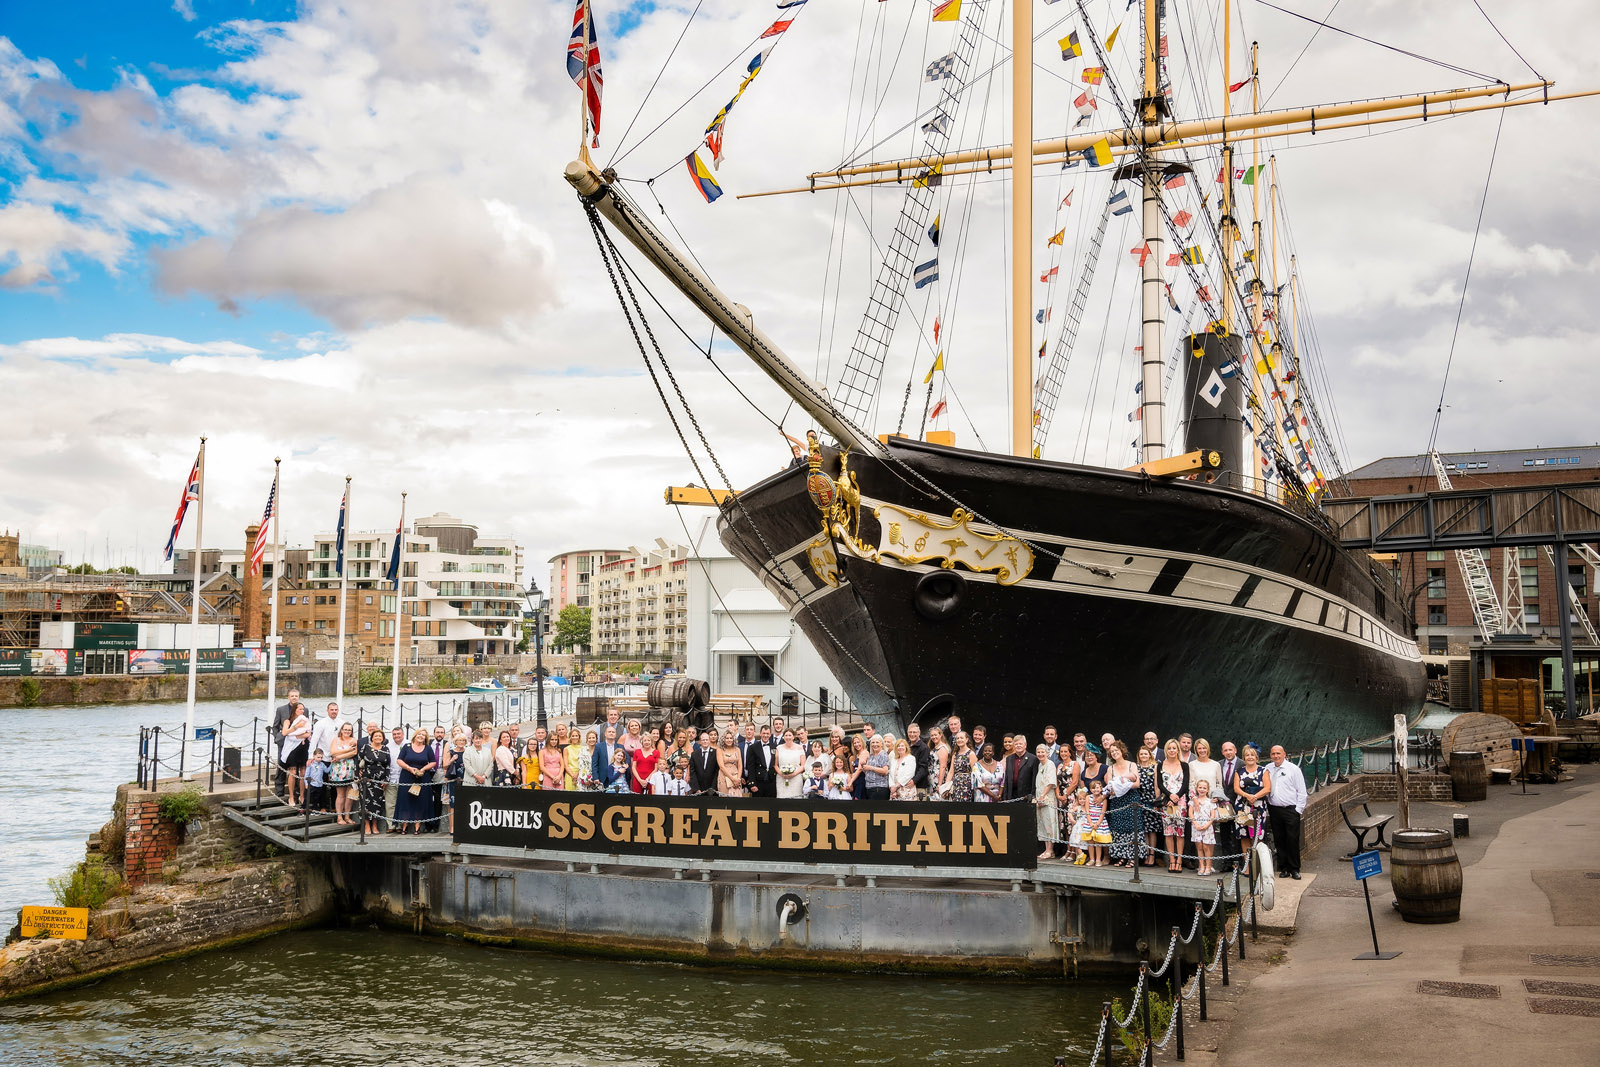 Ss Great Britain Archives Stewart Clarke Photography